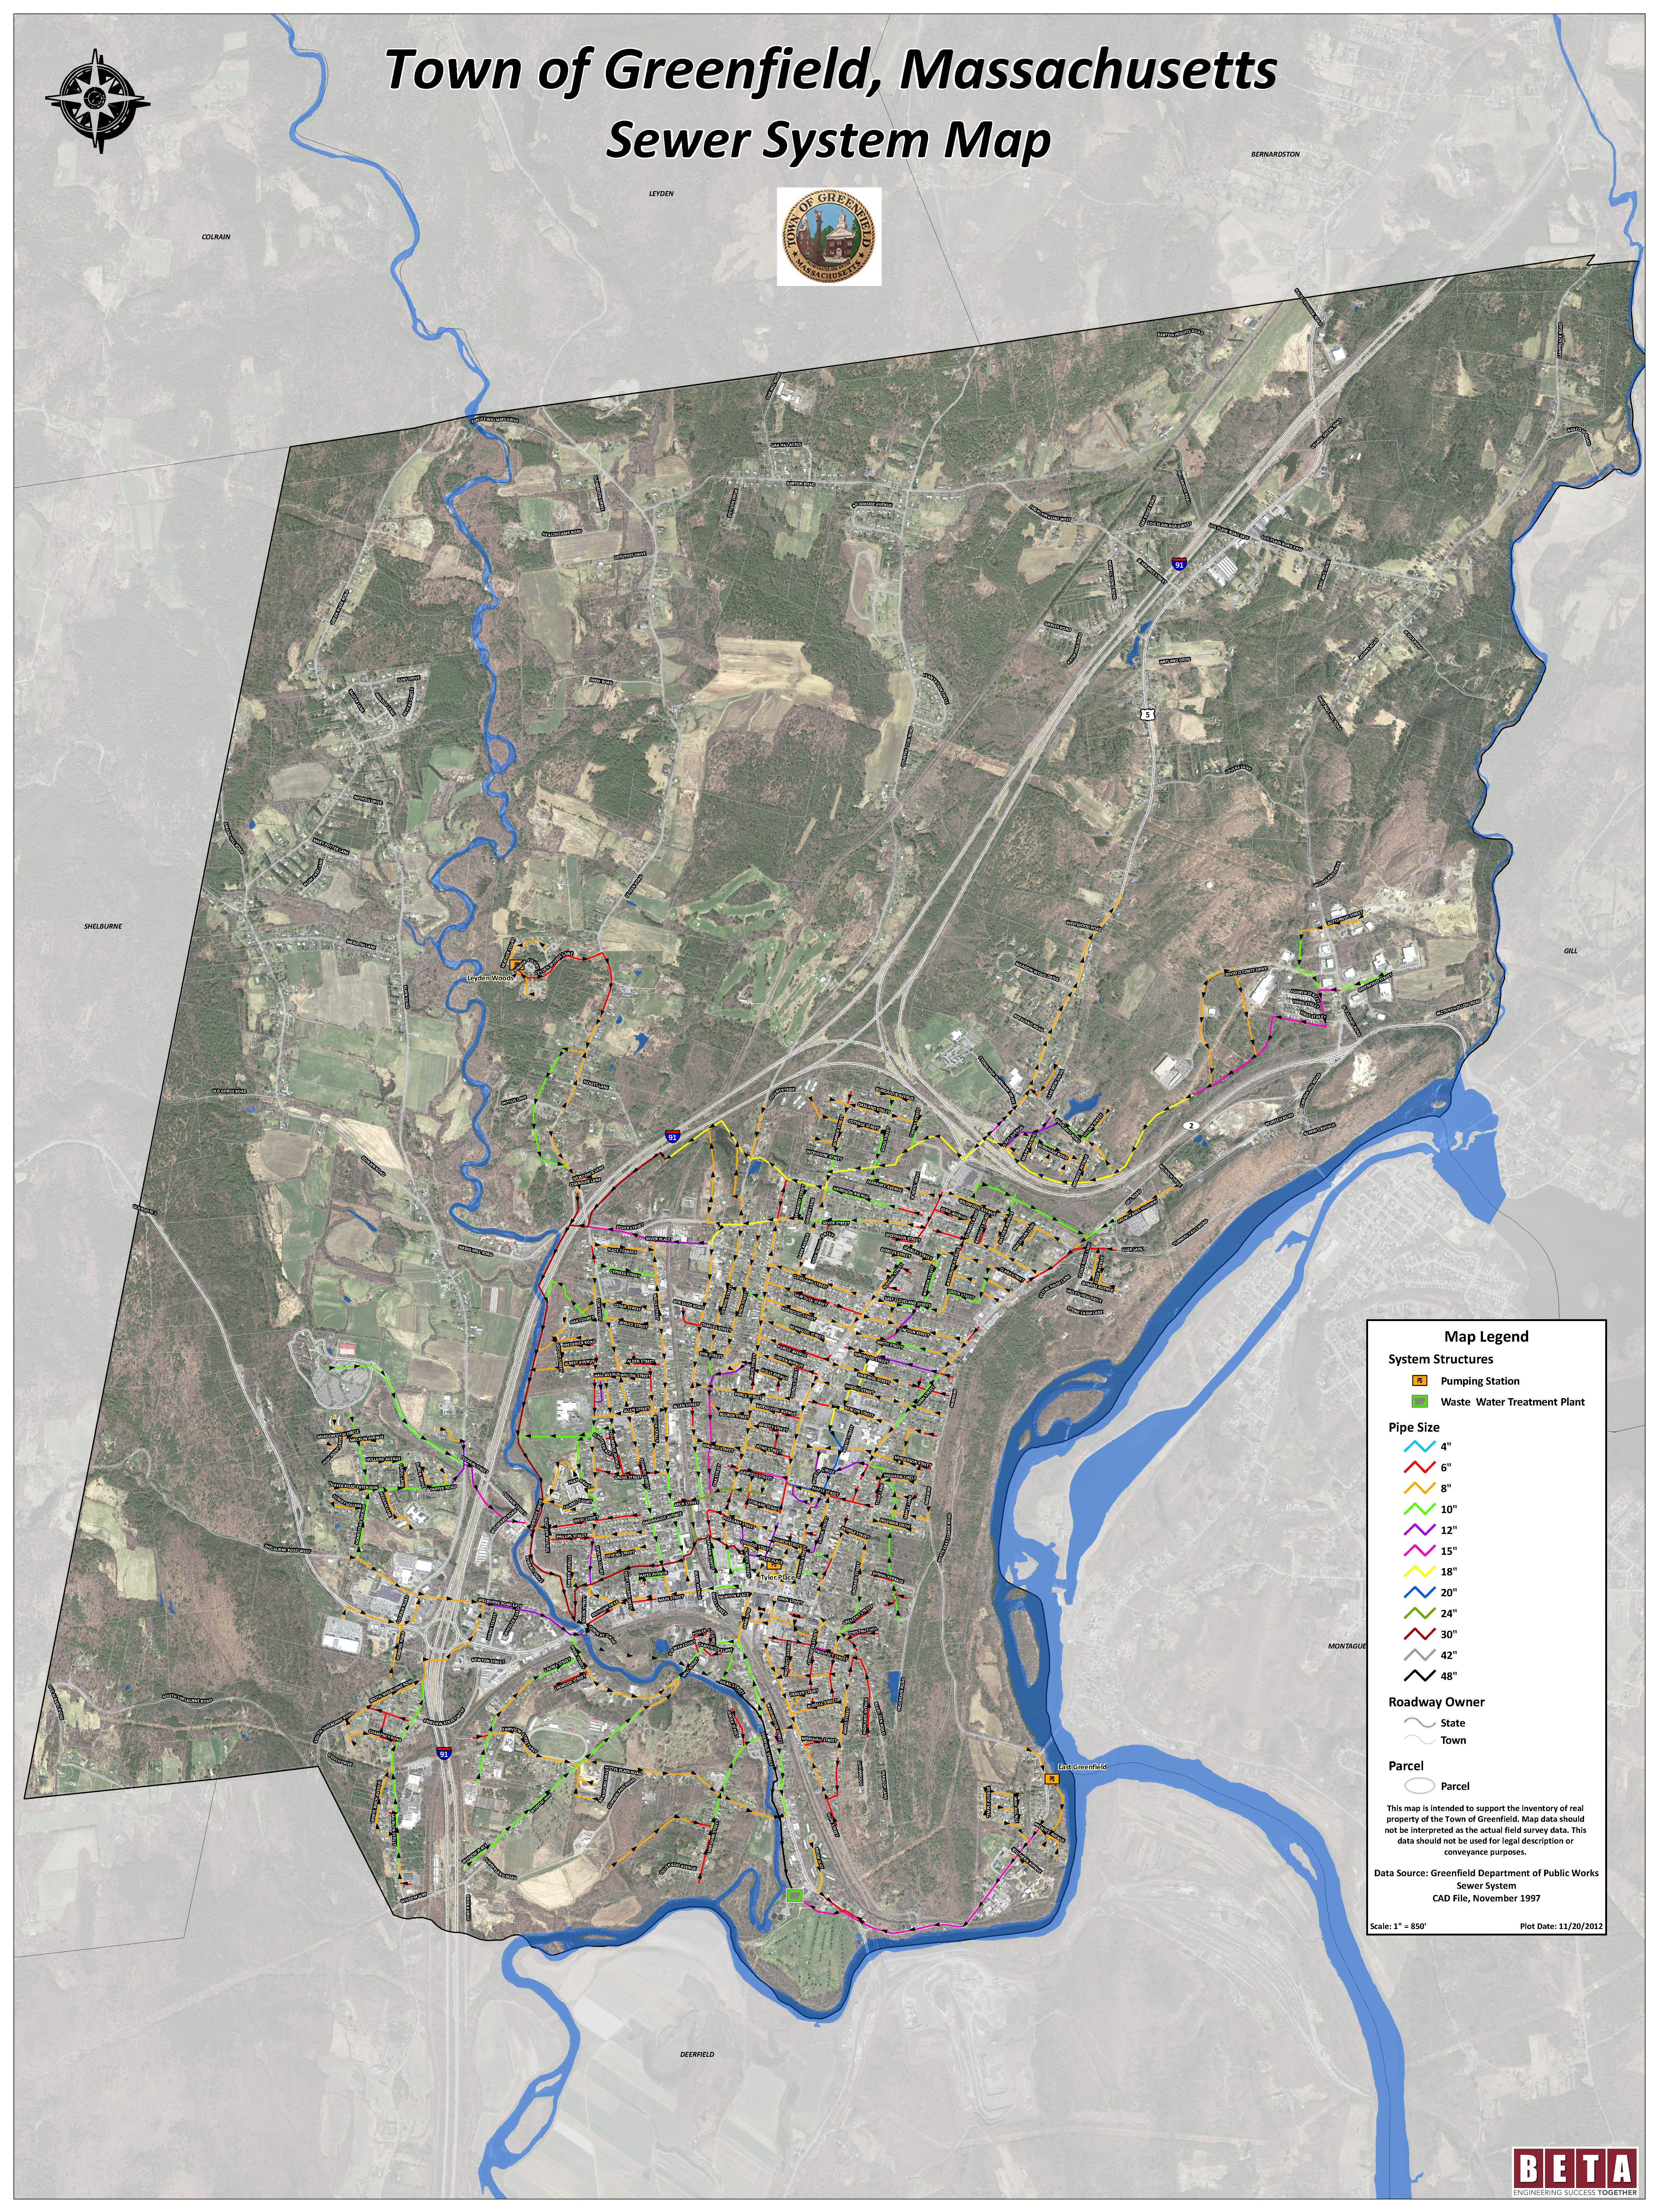 Planning Development GIS Maps Town Of Greenfield MA - Special report us precinct map